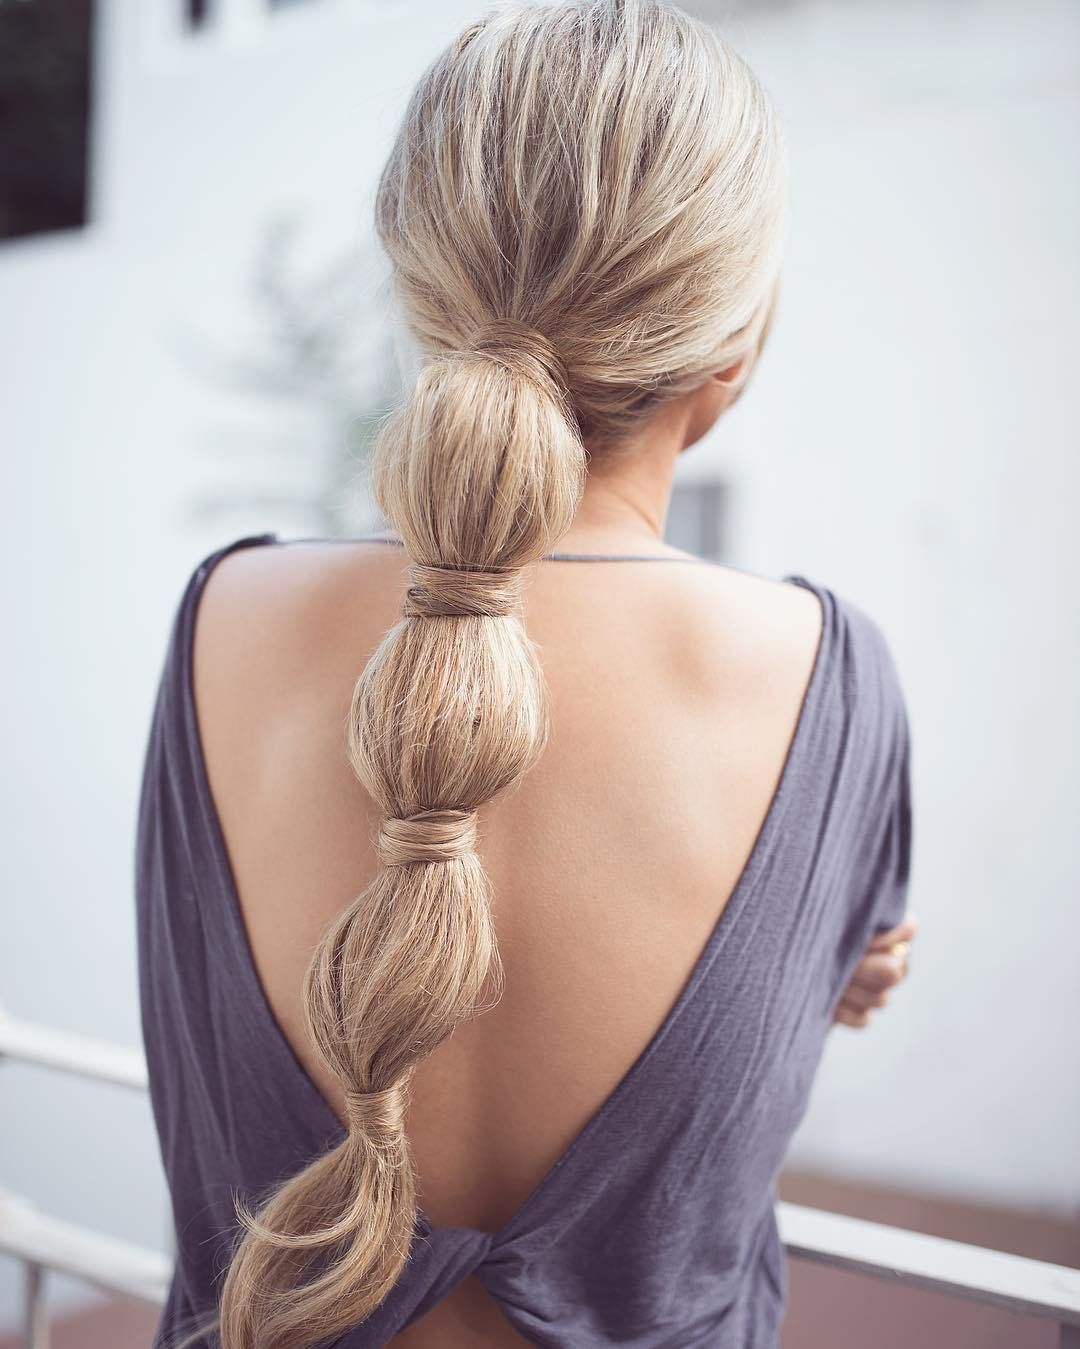 20 Long Hairstyles You Will Want To Rock Immediately Hair